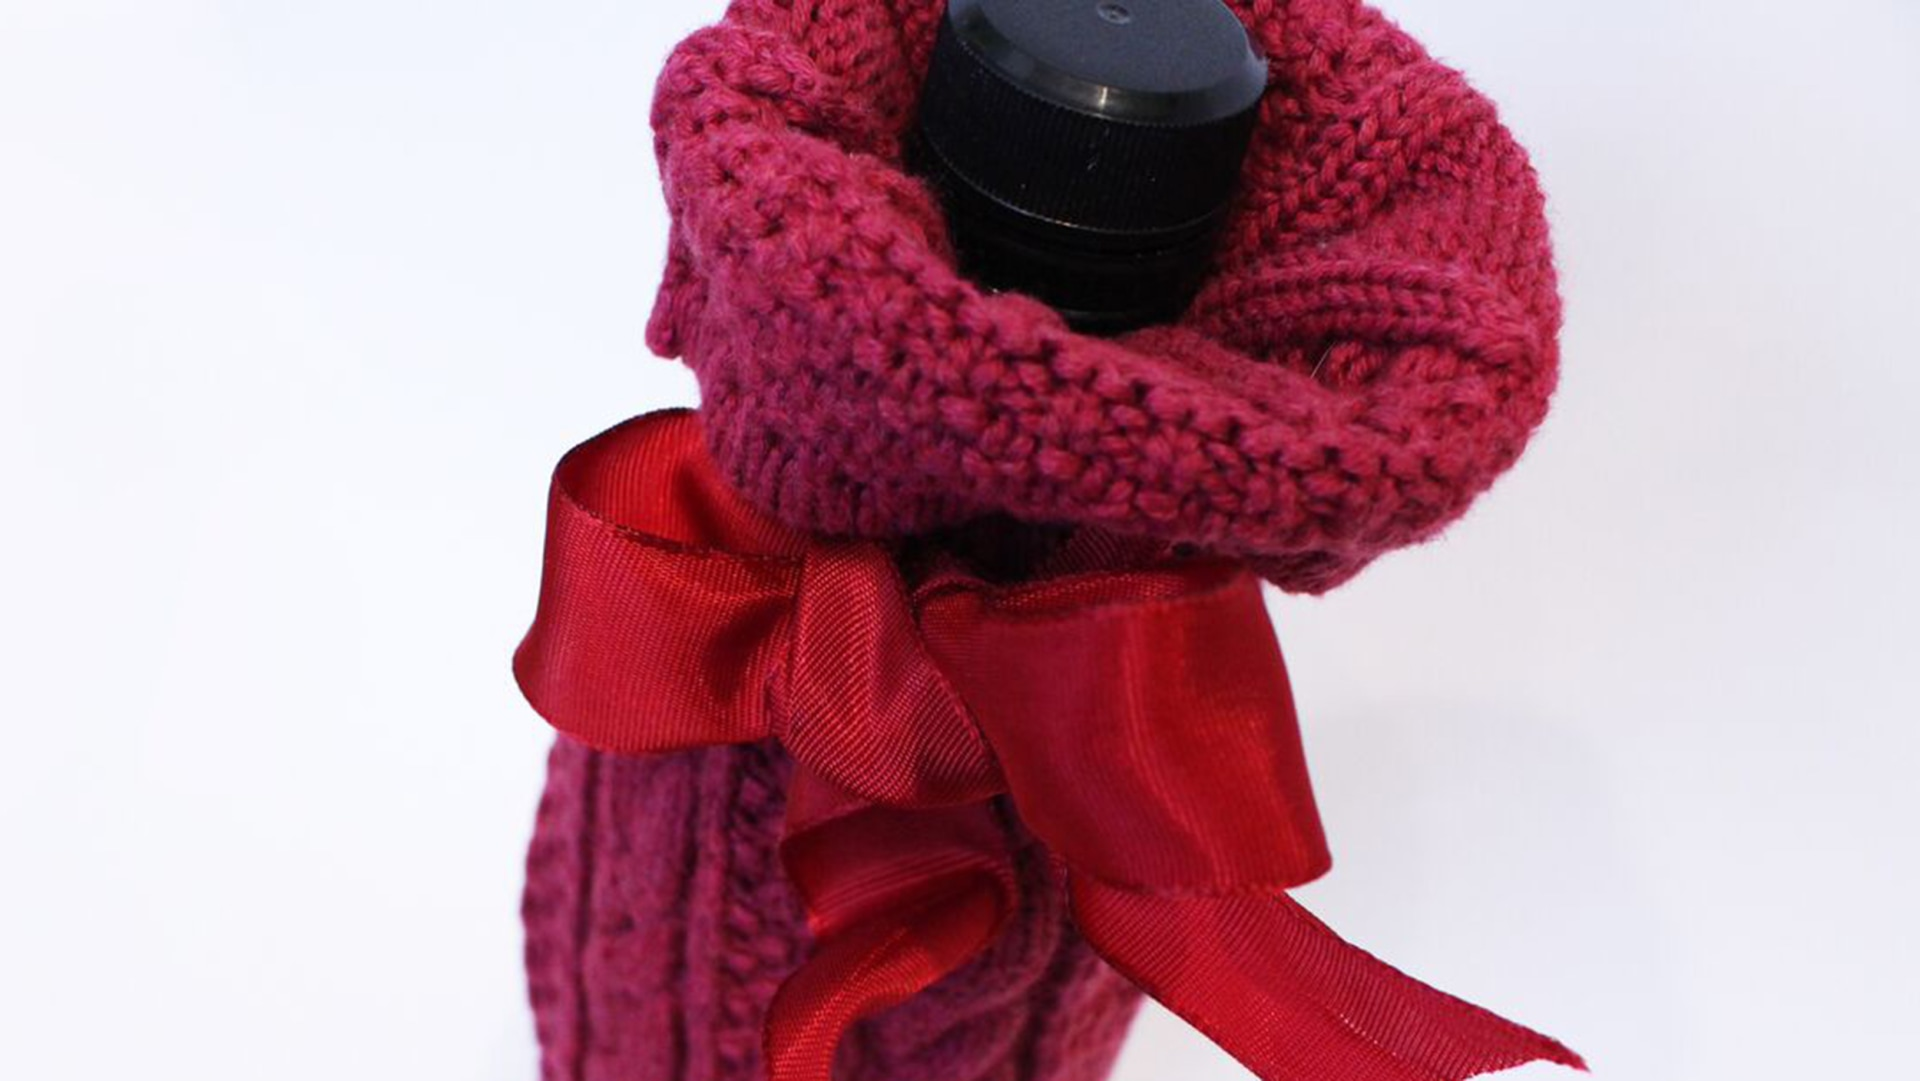 Wine Gift Wrapping Ideas Part - 39: Gift Wrapping Ideas From Your Closet: Give Your Wine Its Own Sweater